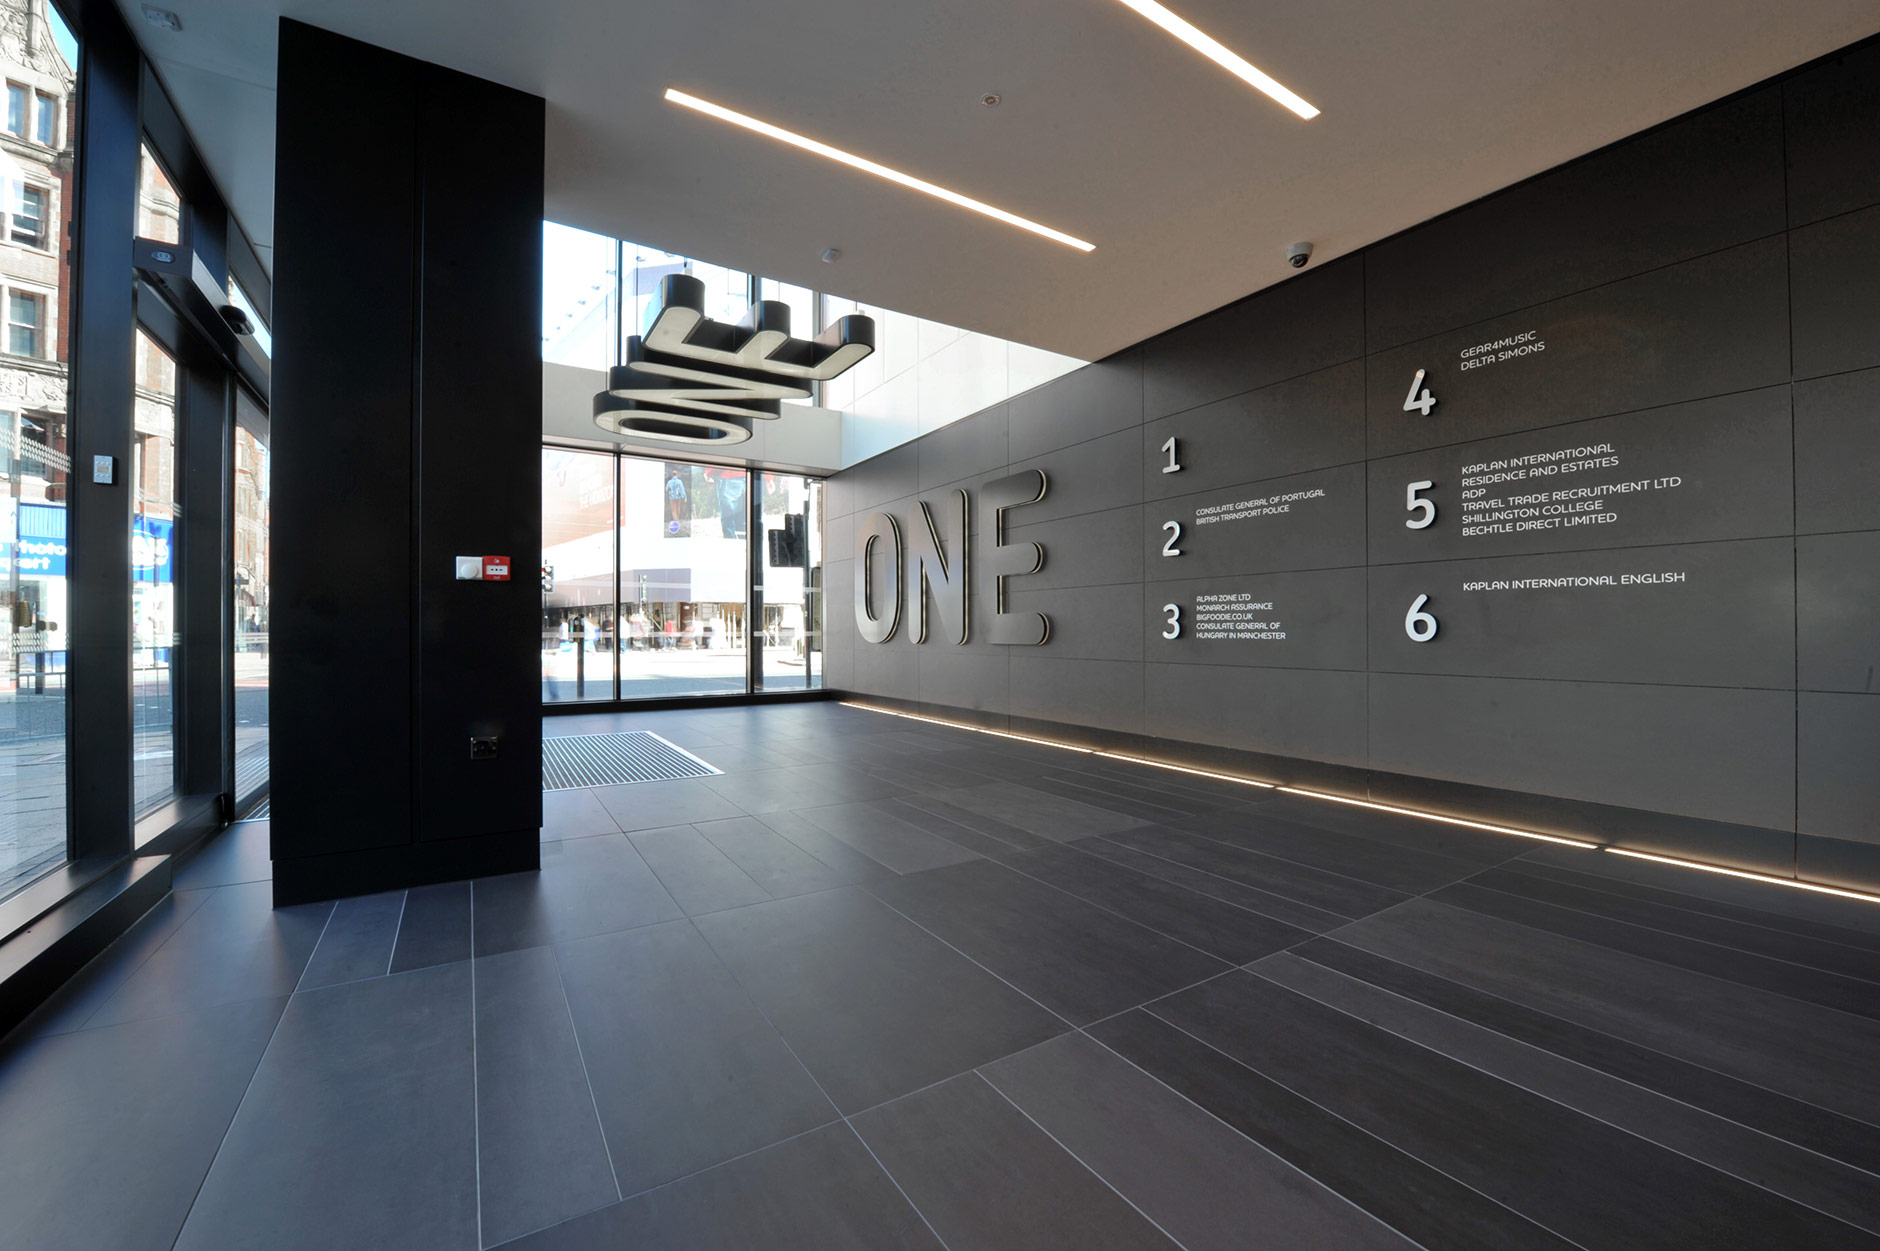 an image of the inside of the entrance to One Portland Street